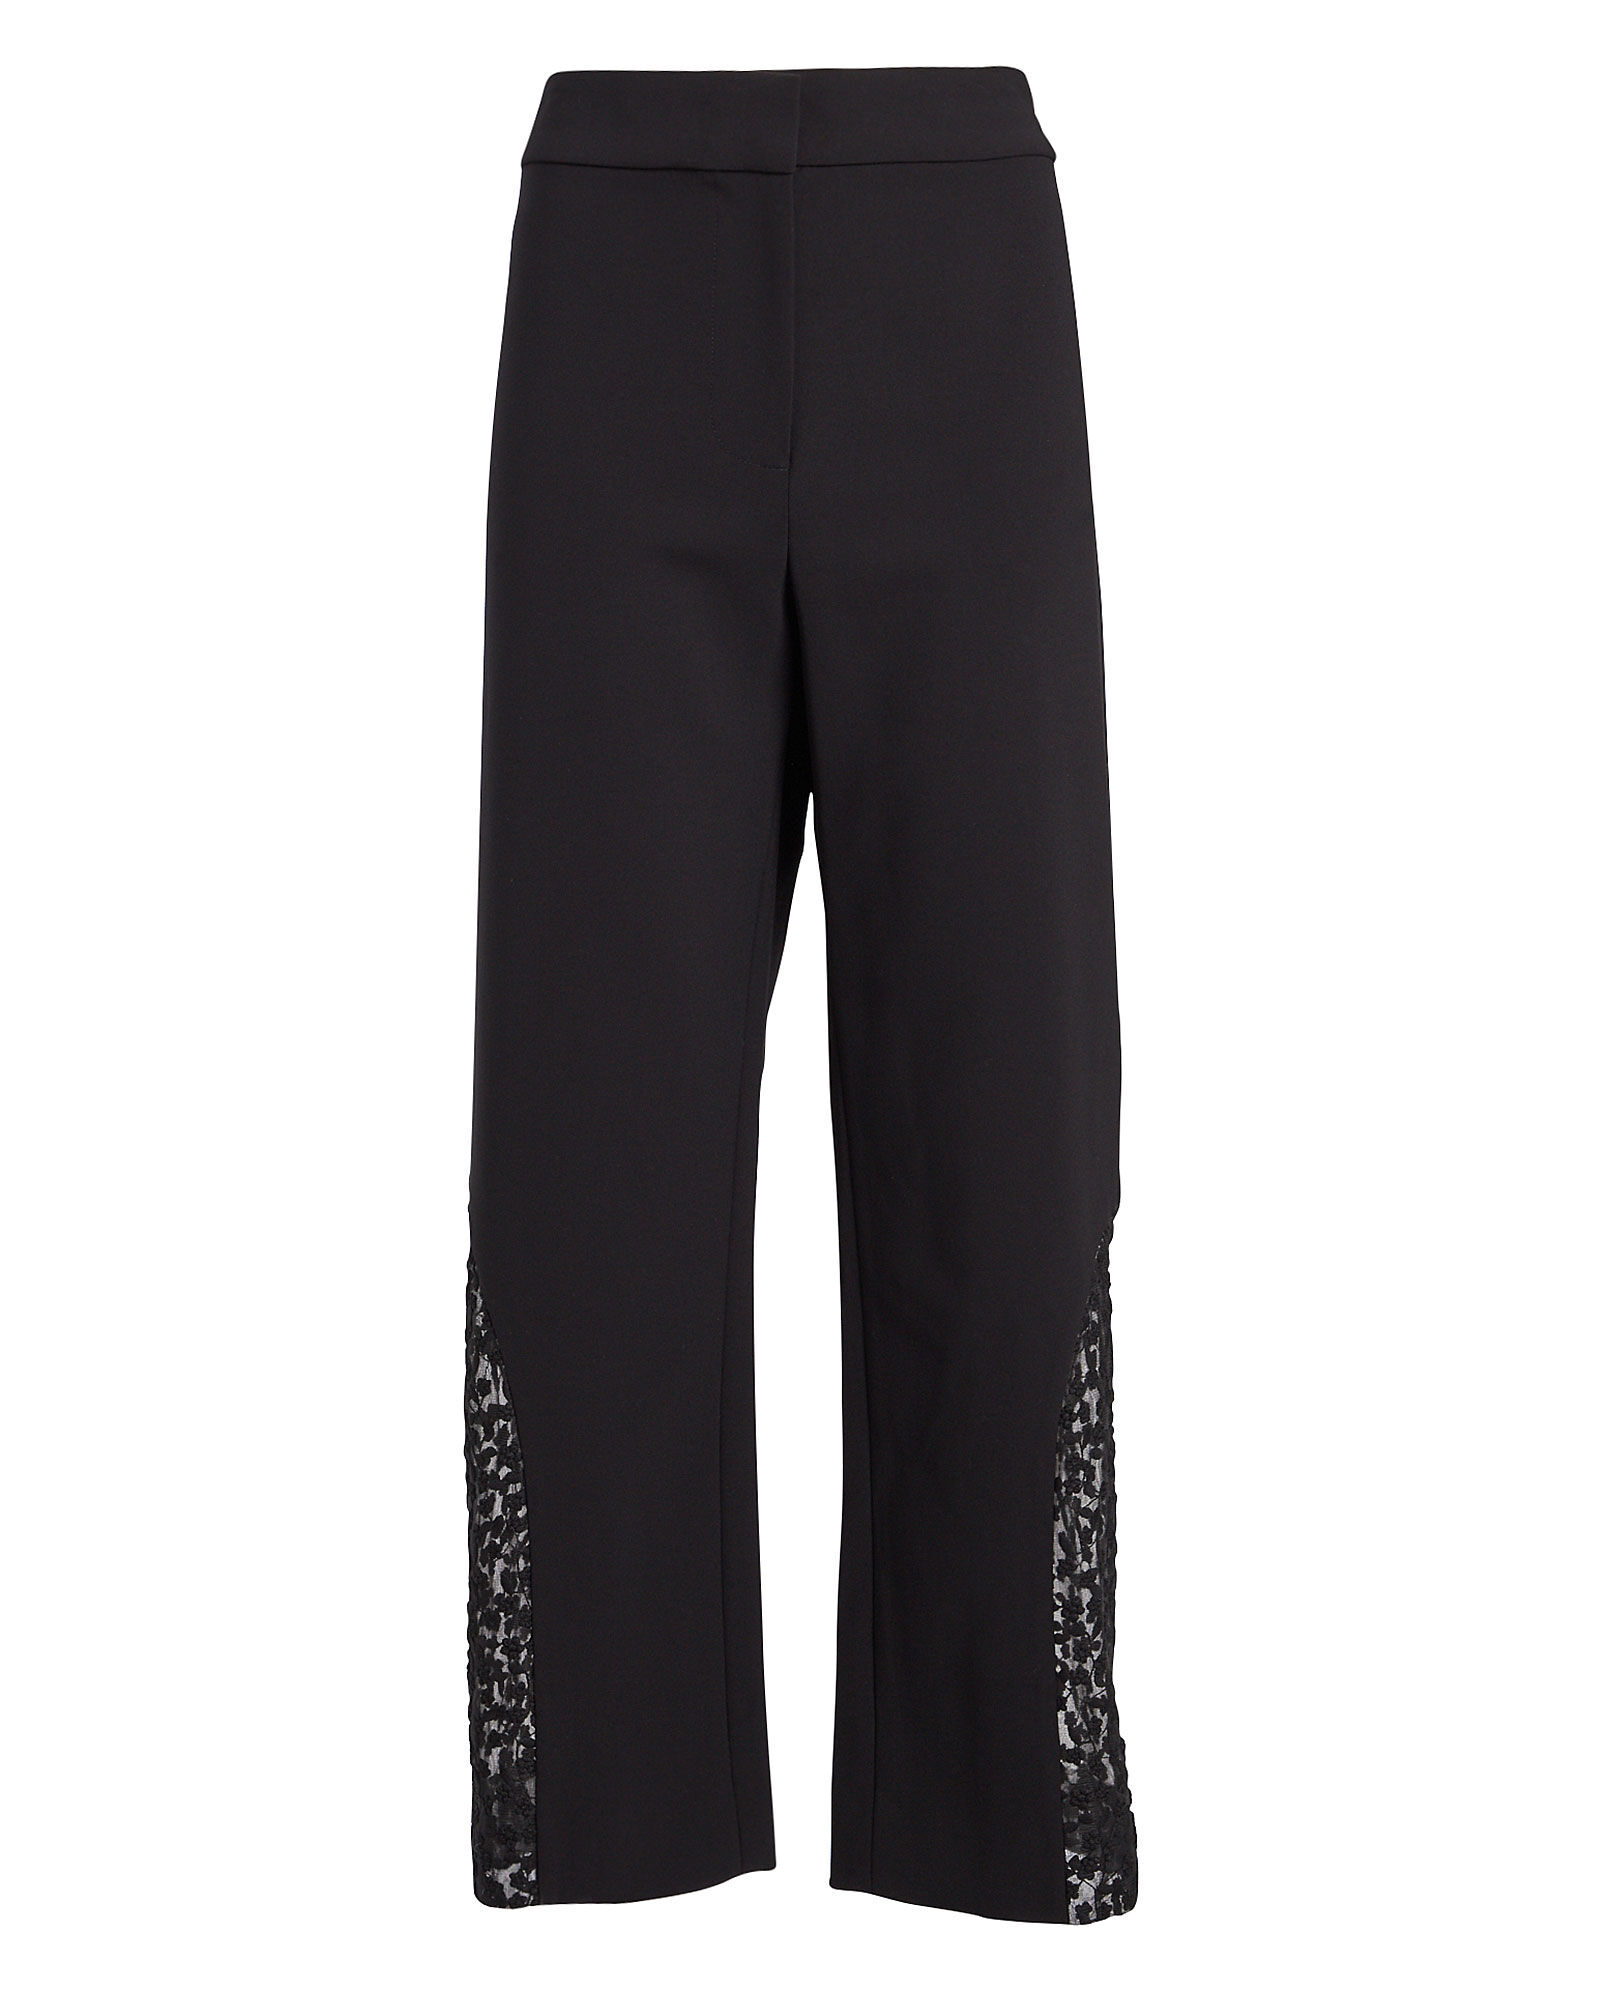 Novata Lace-Trimmed Cropped Pants, BLACK, hi-res